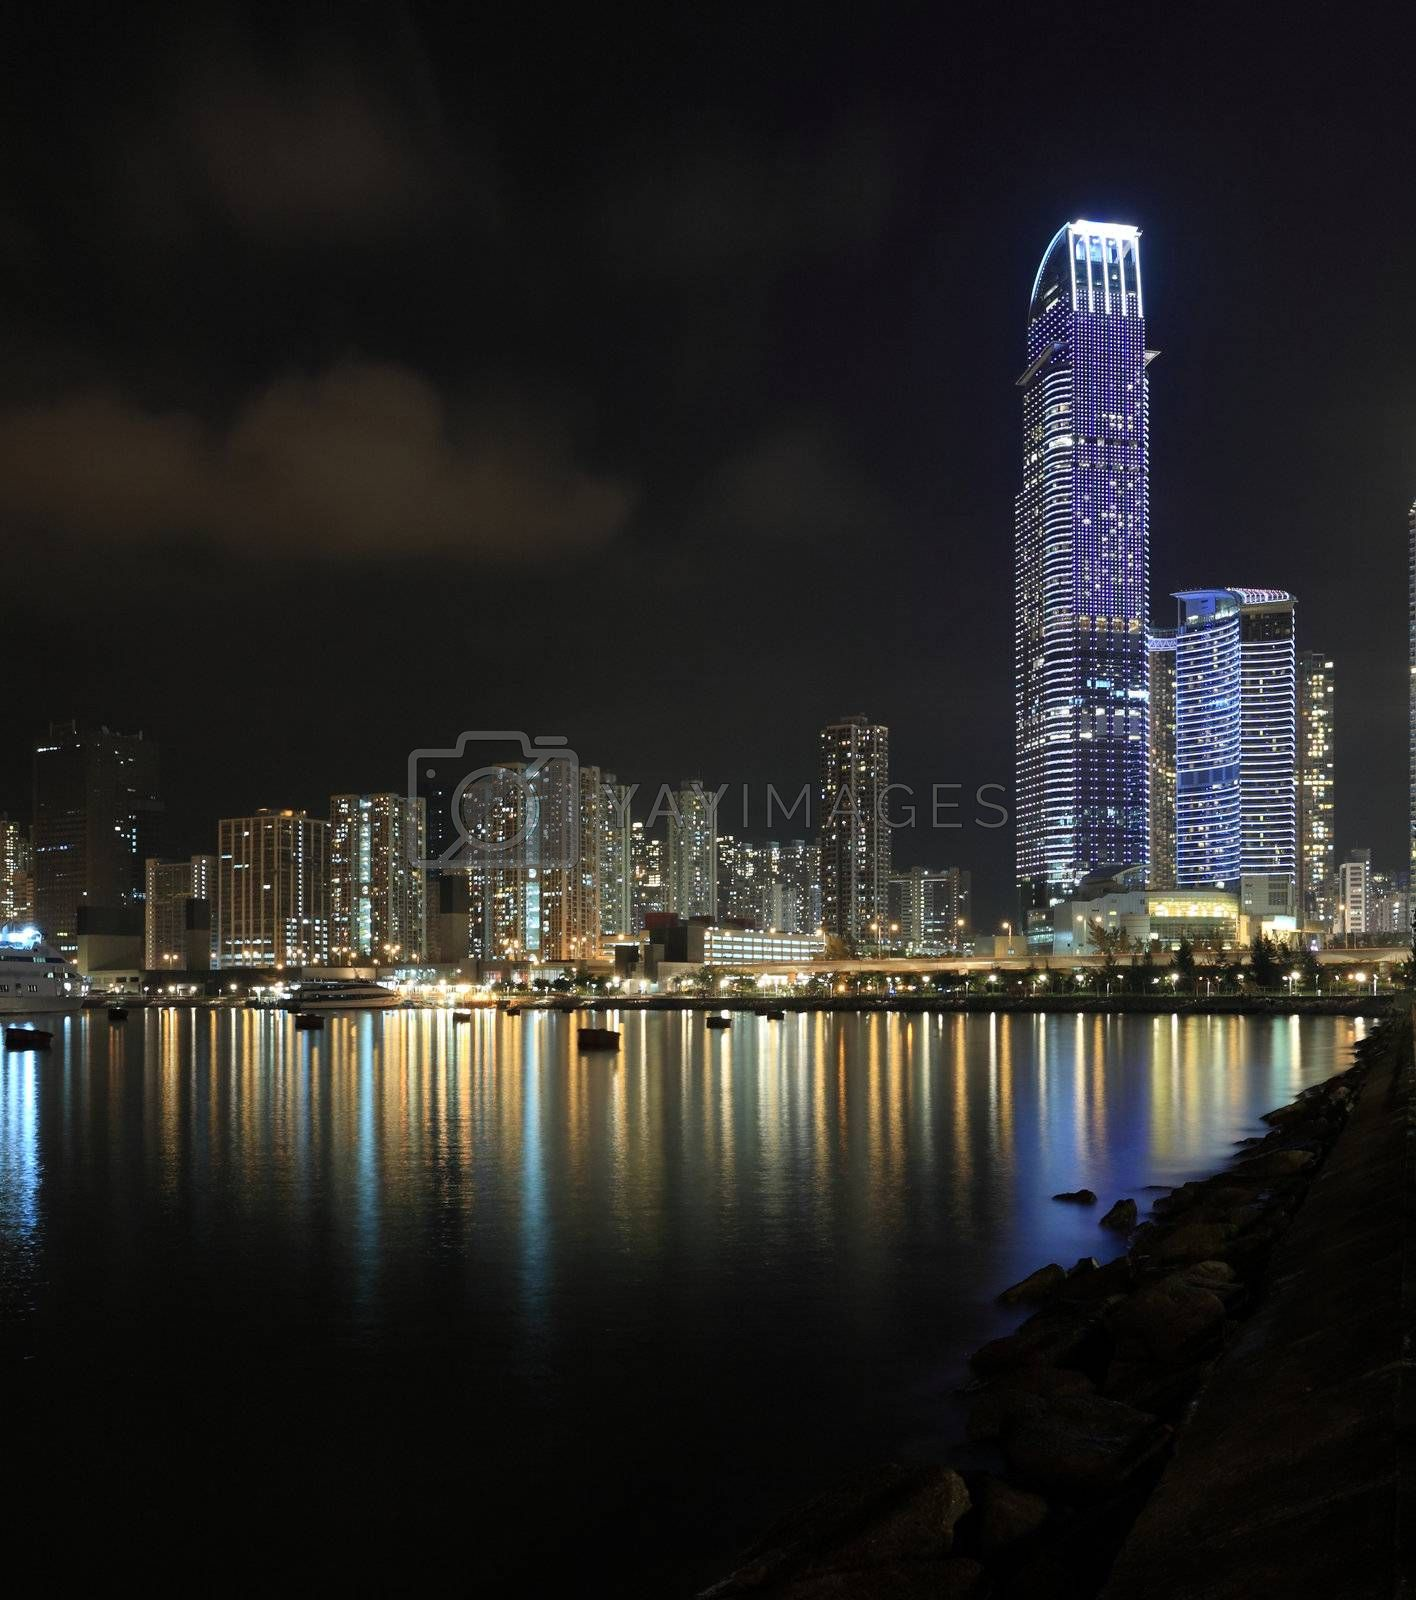 Royalty free image of Business Towers and Residential Apartment Buildings in Hong Kong at night by leungchopan